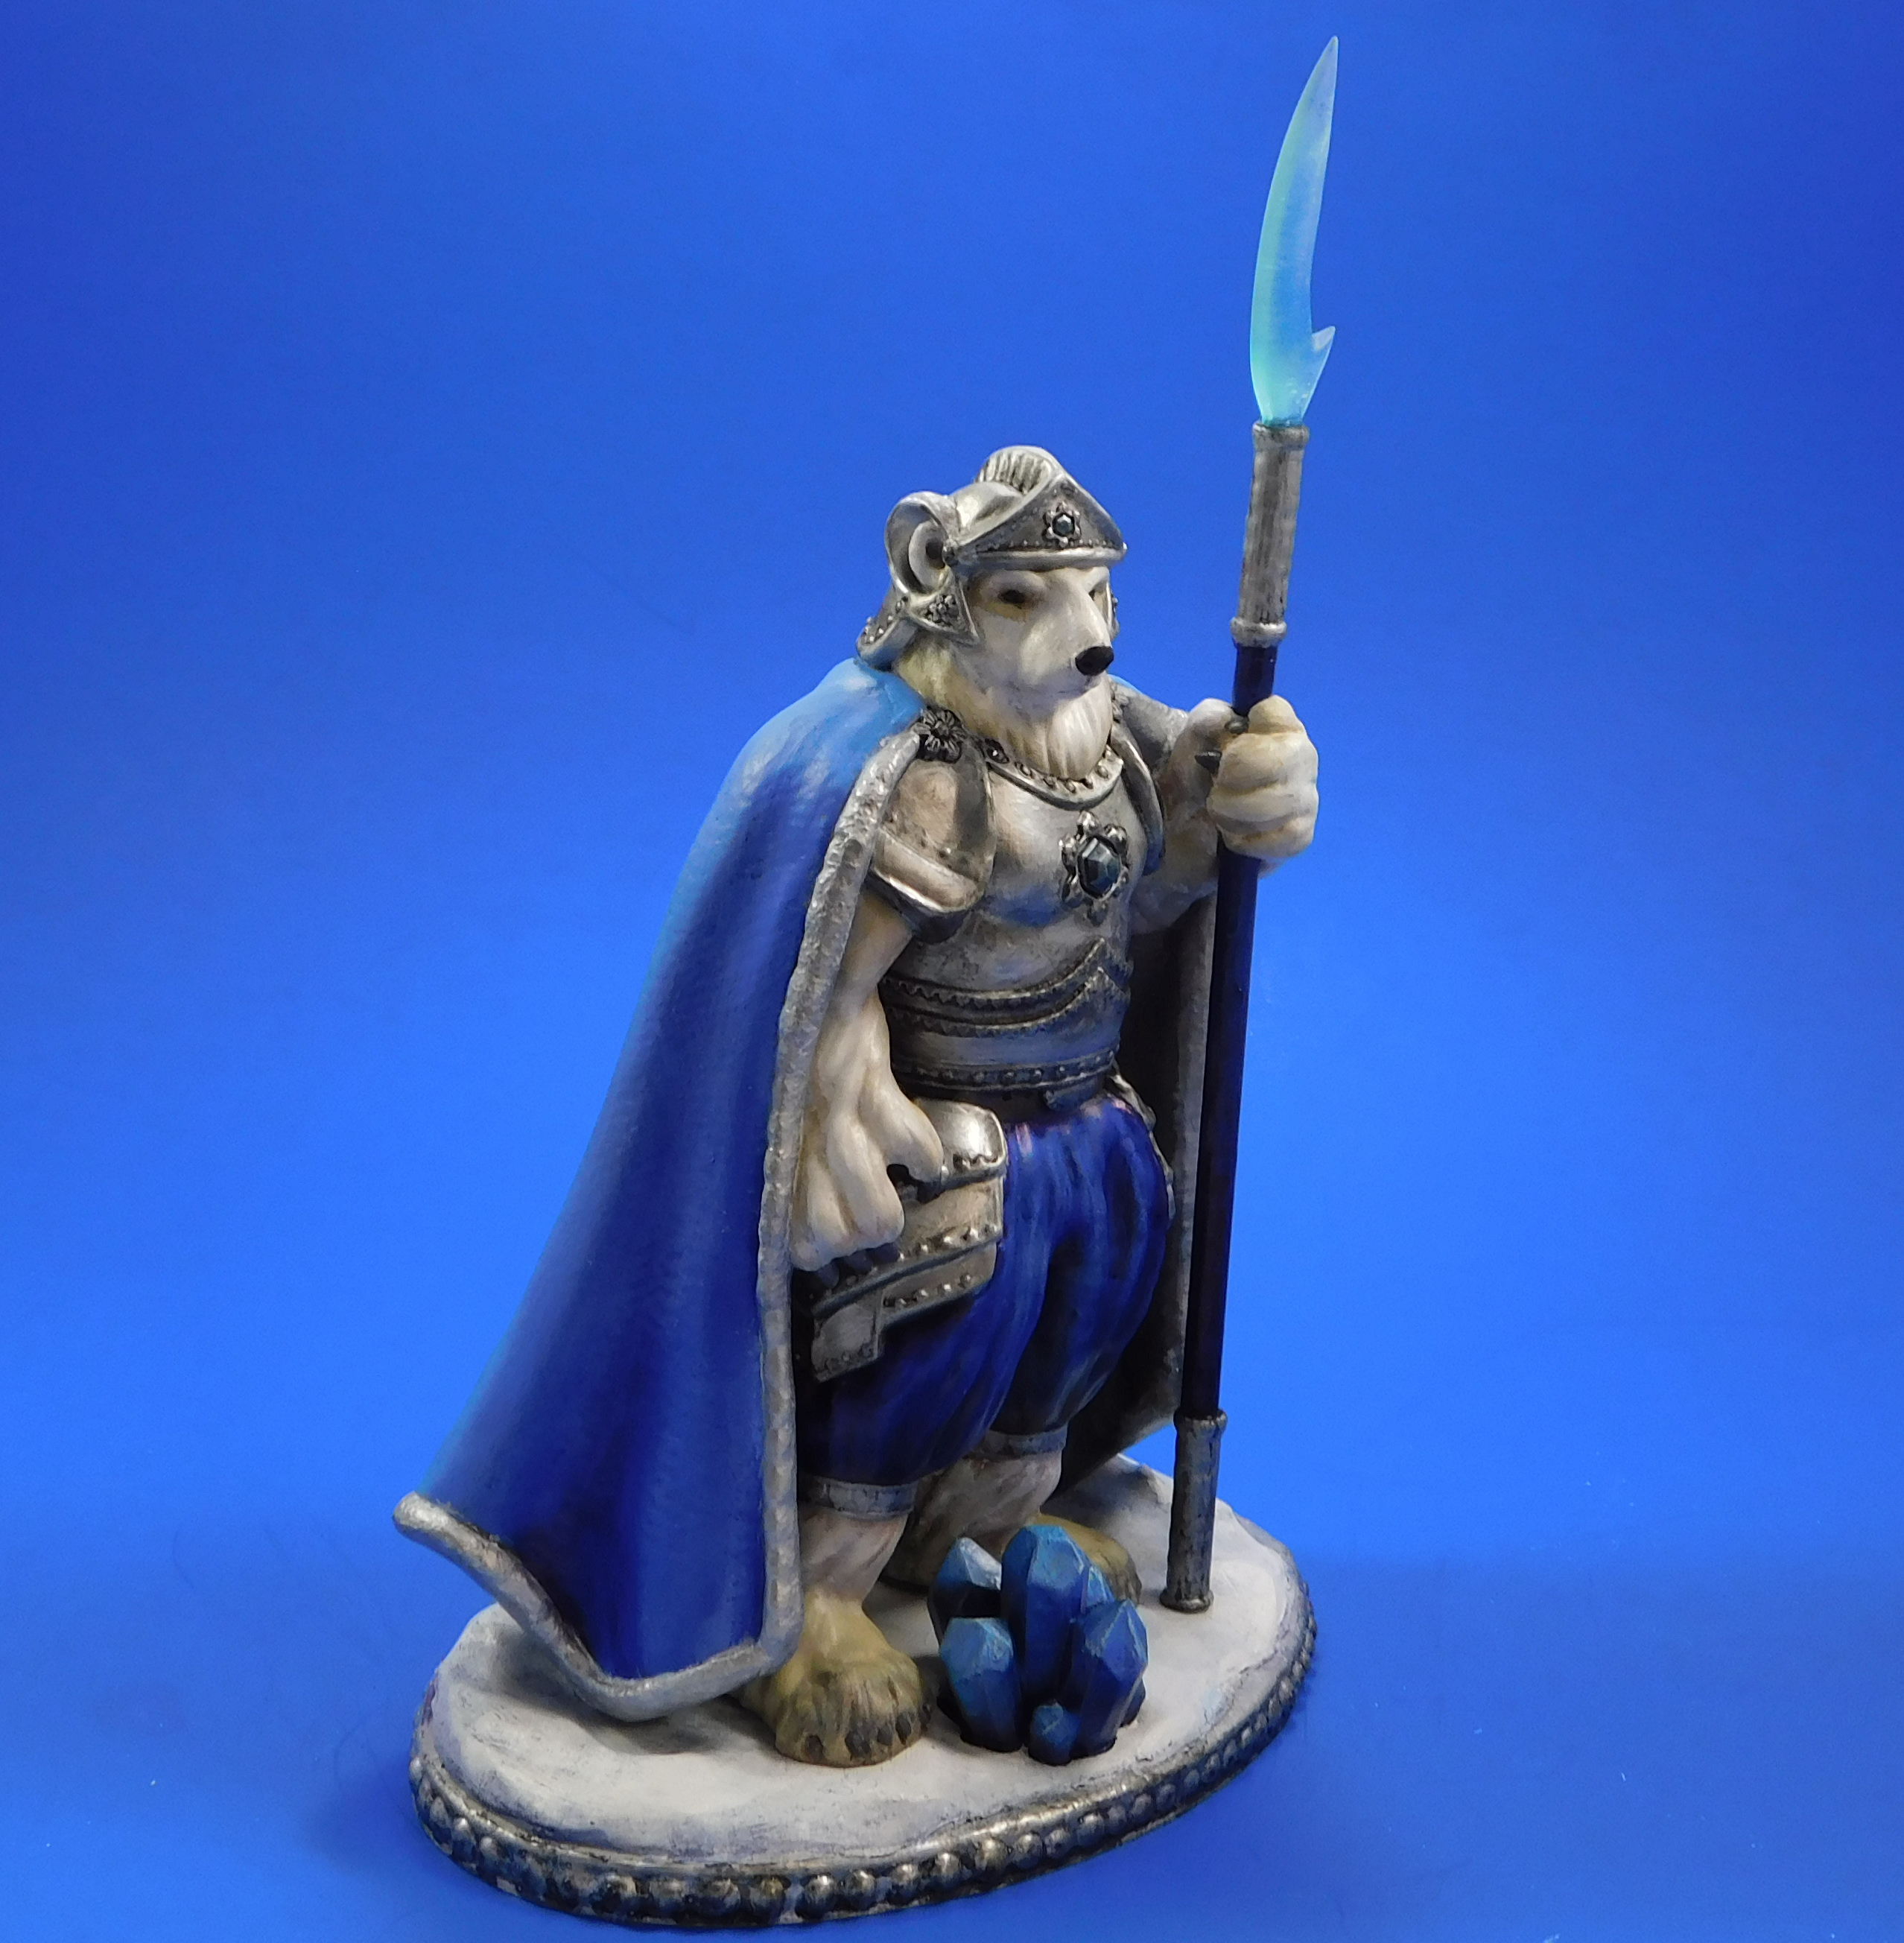 armel_side.jpg Download free STL file Armel the Polar Paladin • 3D printer model, loubie